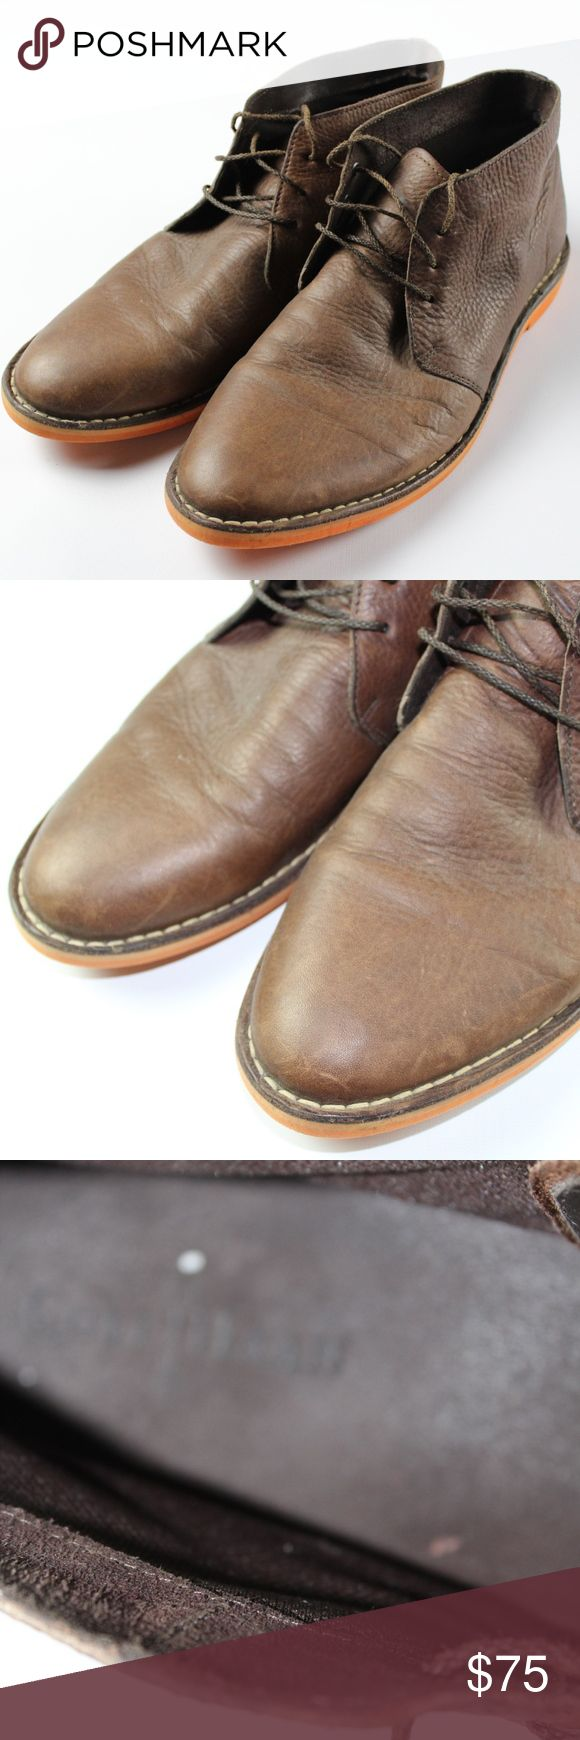 Cole Haan 11.5 Leather Chukka Boots Brown Orange Cole Haan Leather Chukka Boots  Excellent boots  Comes from a smoke-free household  The size is 11.5  Brown and Orange  Leather   Check out my other items for sale in my store! Cole Haan Shoes Chukka Boots